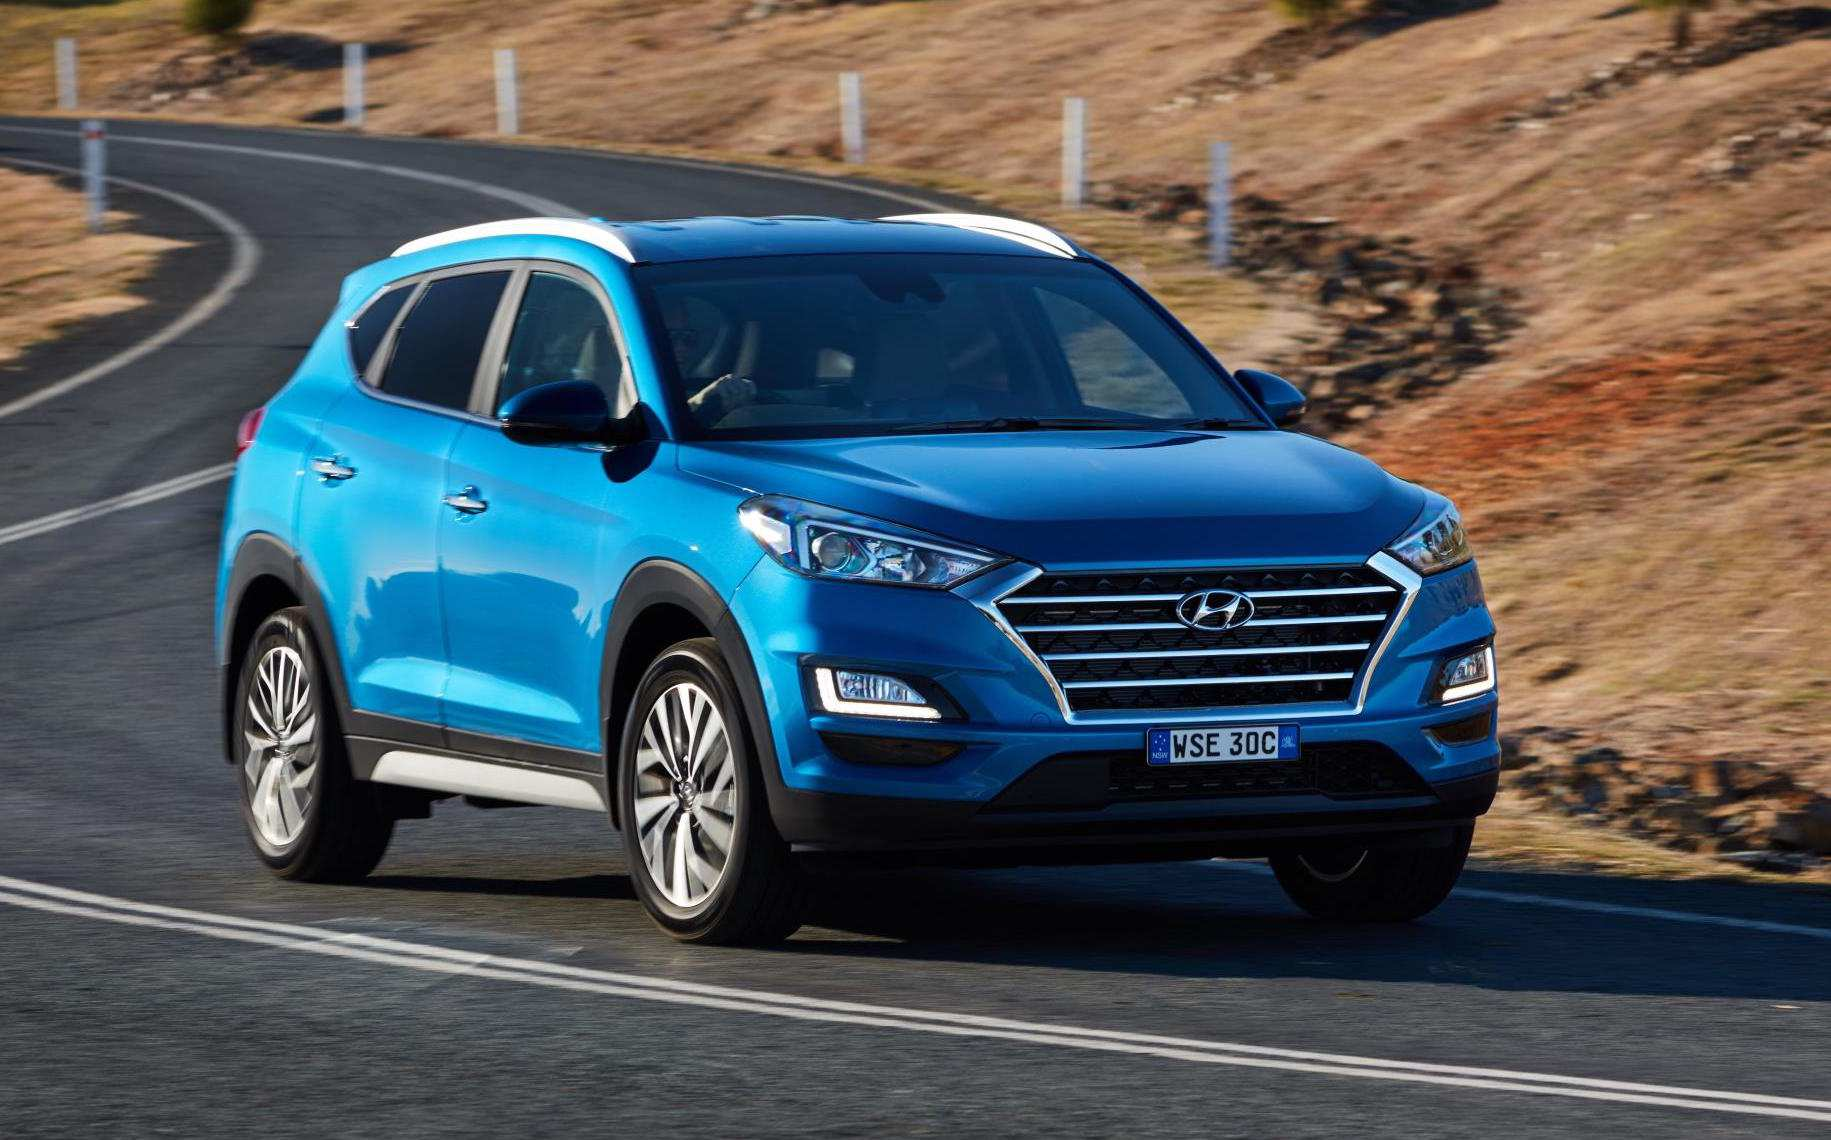 70 New When Will The 2020 Hyundai Tucson Be Released Pricing by When Will The 2020 Hyundai Tucson Be Released